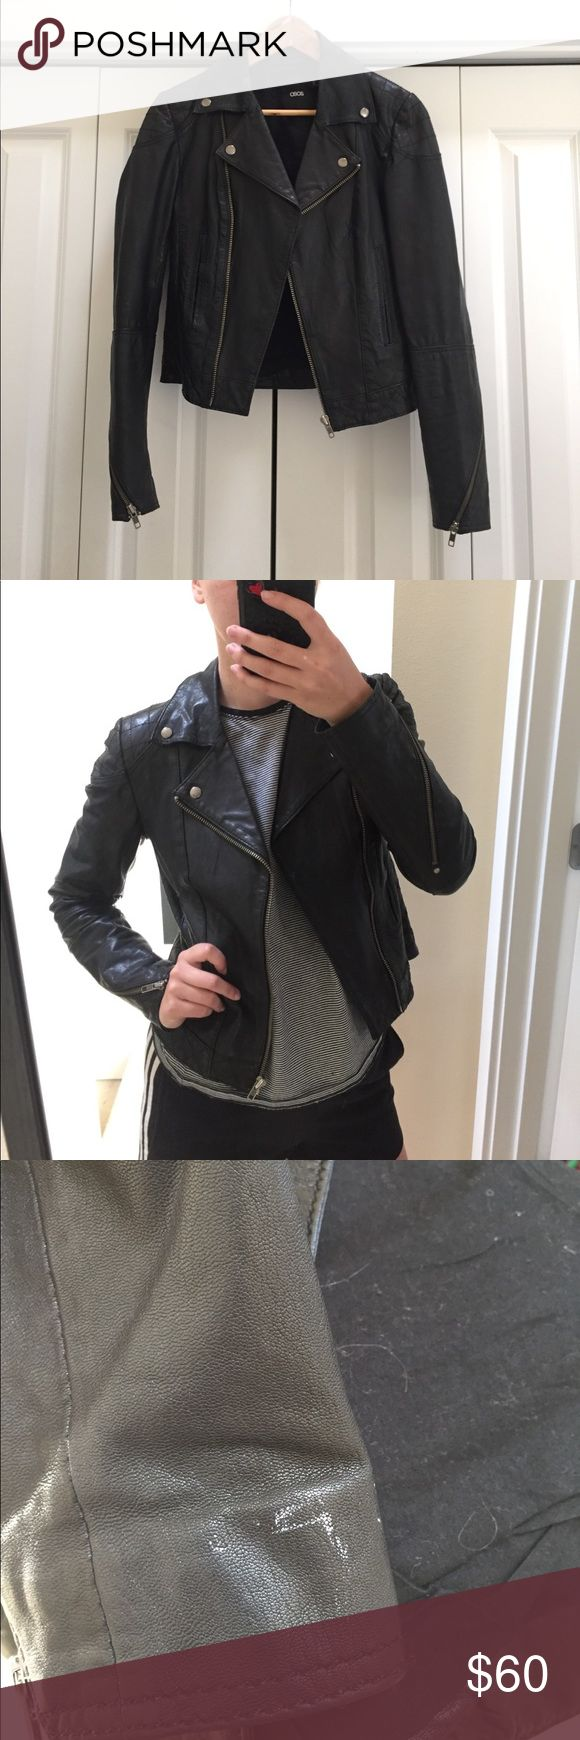 asos leather moto jacket GUC broken-in leather jacket from asos, size 4. Cute zipper details, hits right at the waist! Small white spot on sleeve, but overall good condition. Asos Jackets & Coats